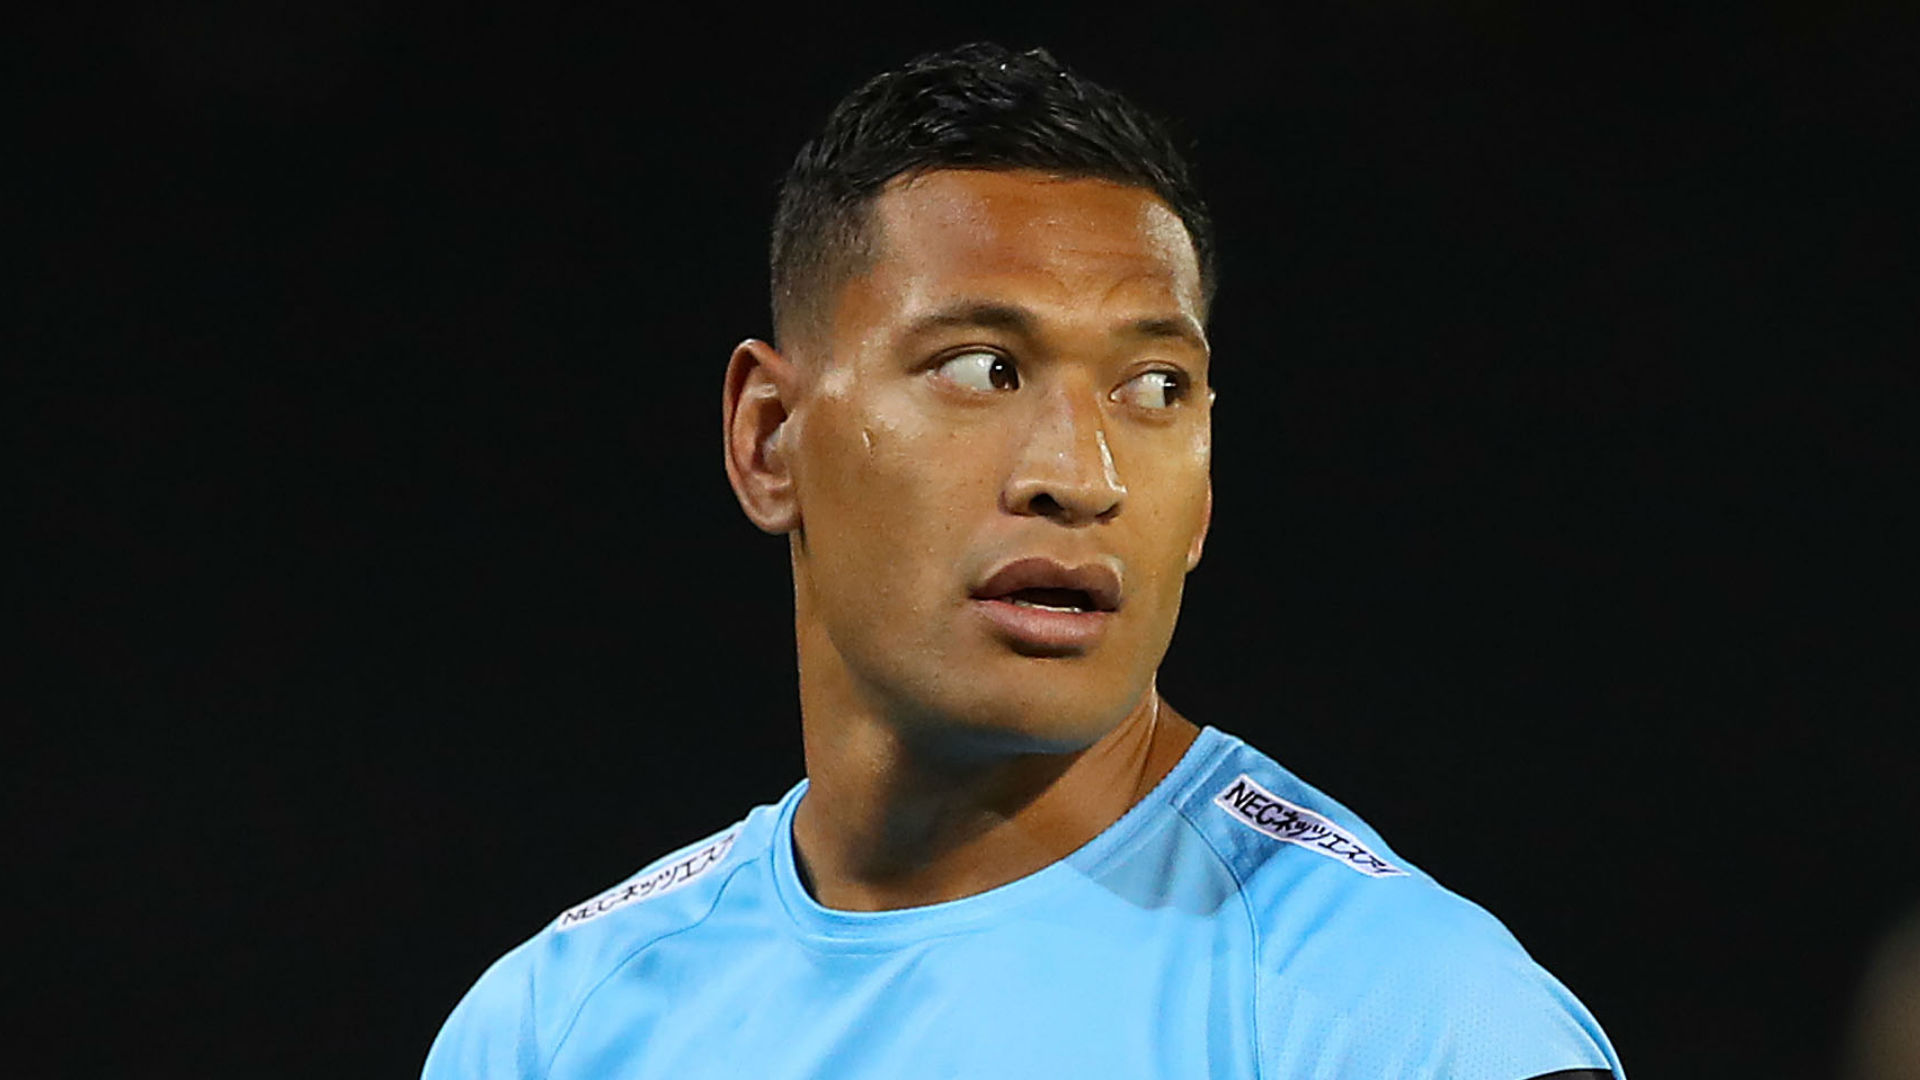 Wigan will hold a 'Pride Day' when they welcome Catalans Dragons on March 22, in response to the French club's signing of Israel Folau.